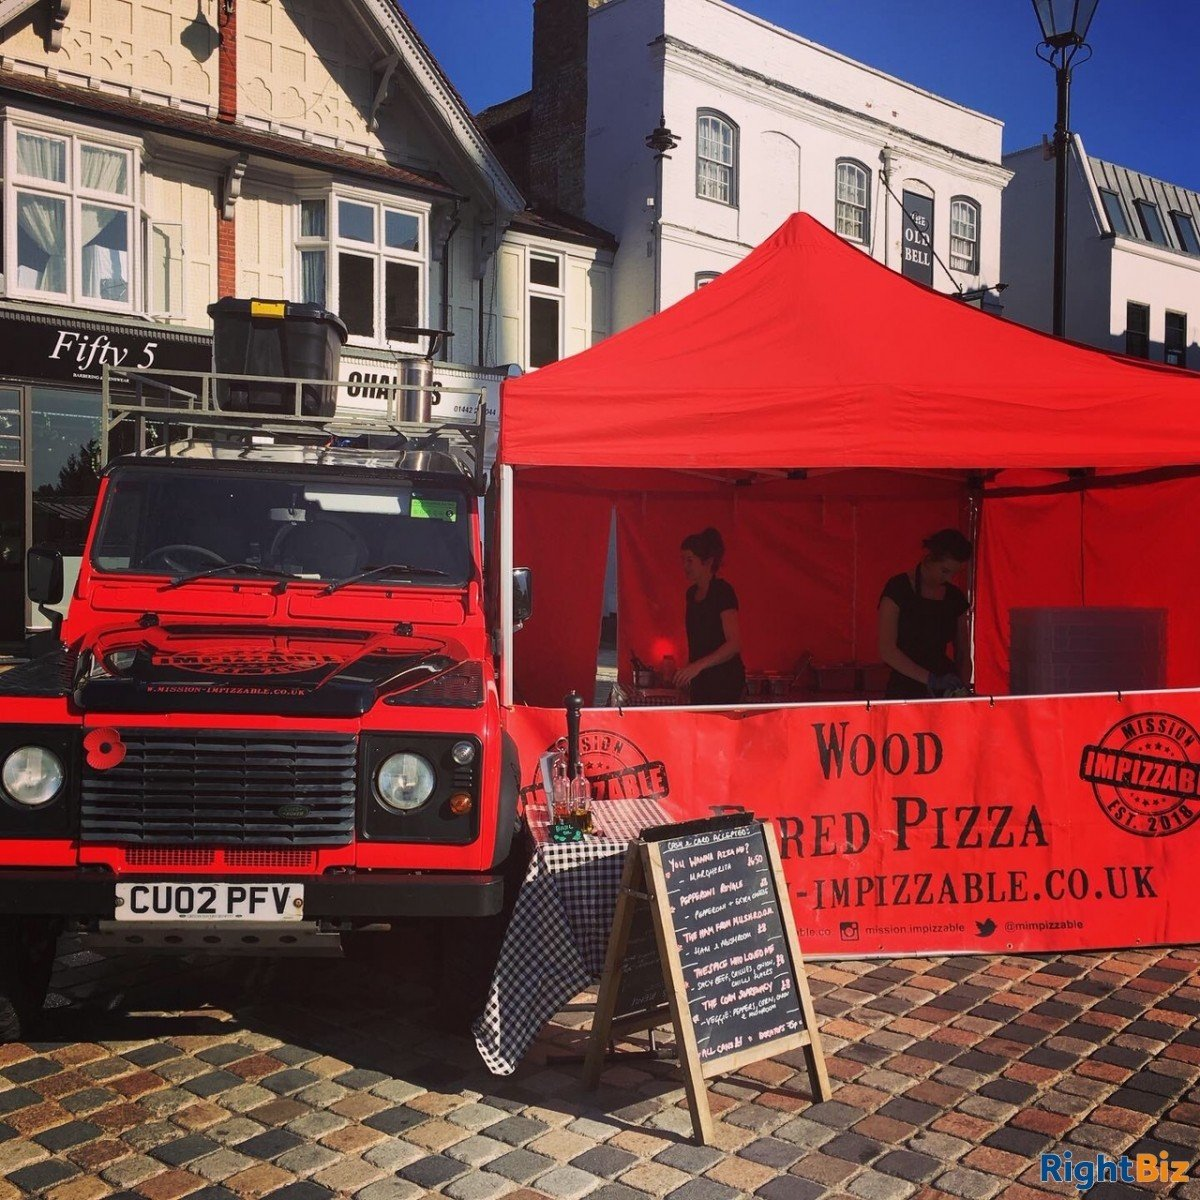 Land Rover Wood Fired Pizza Business, quirky and attractive with prospects - Image 3